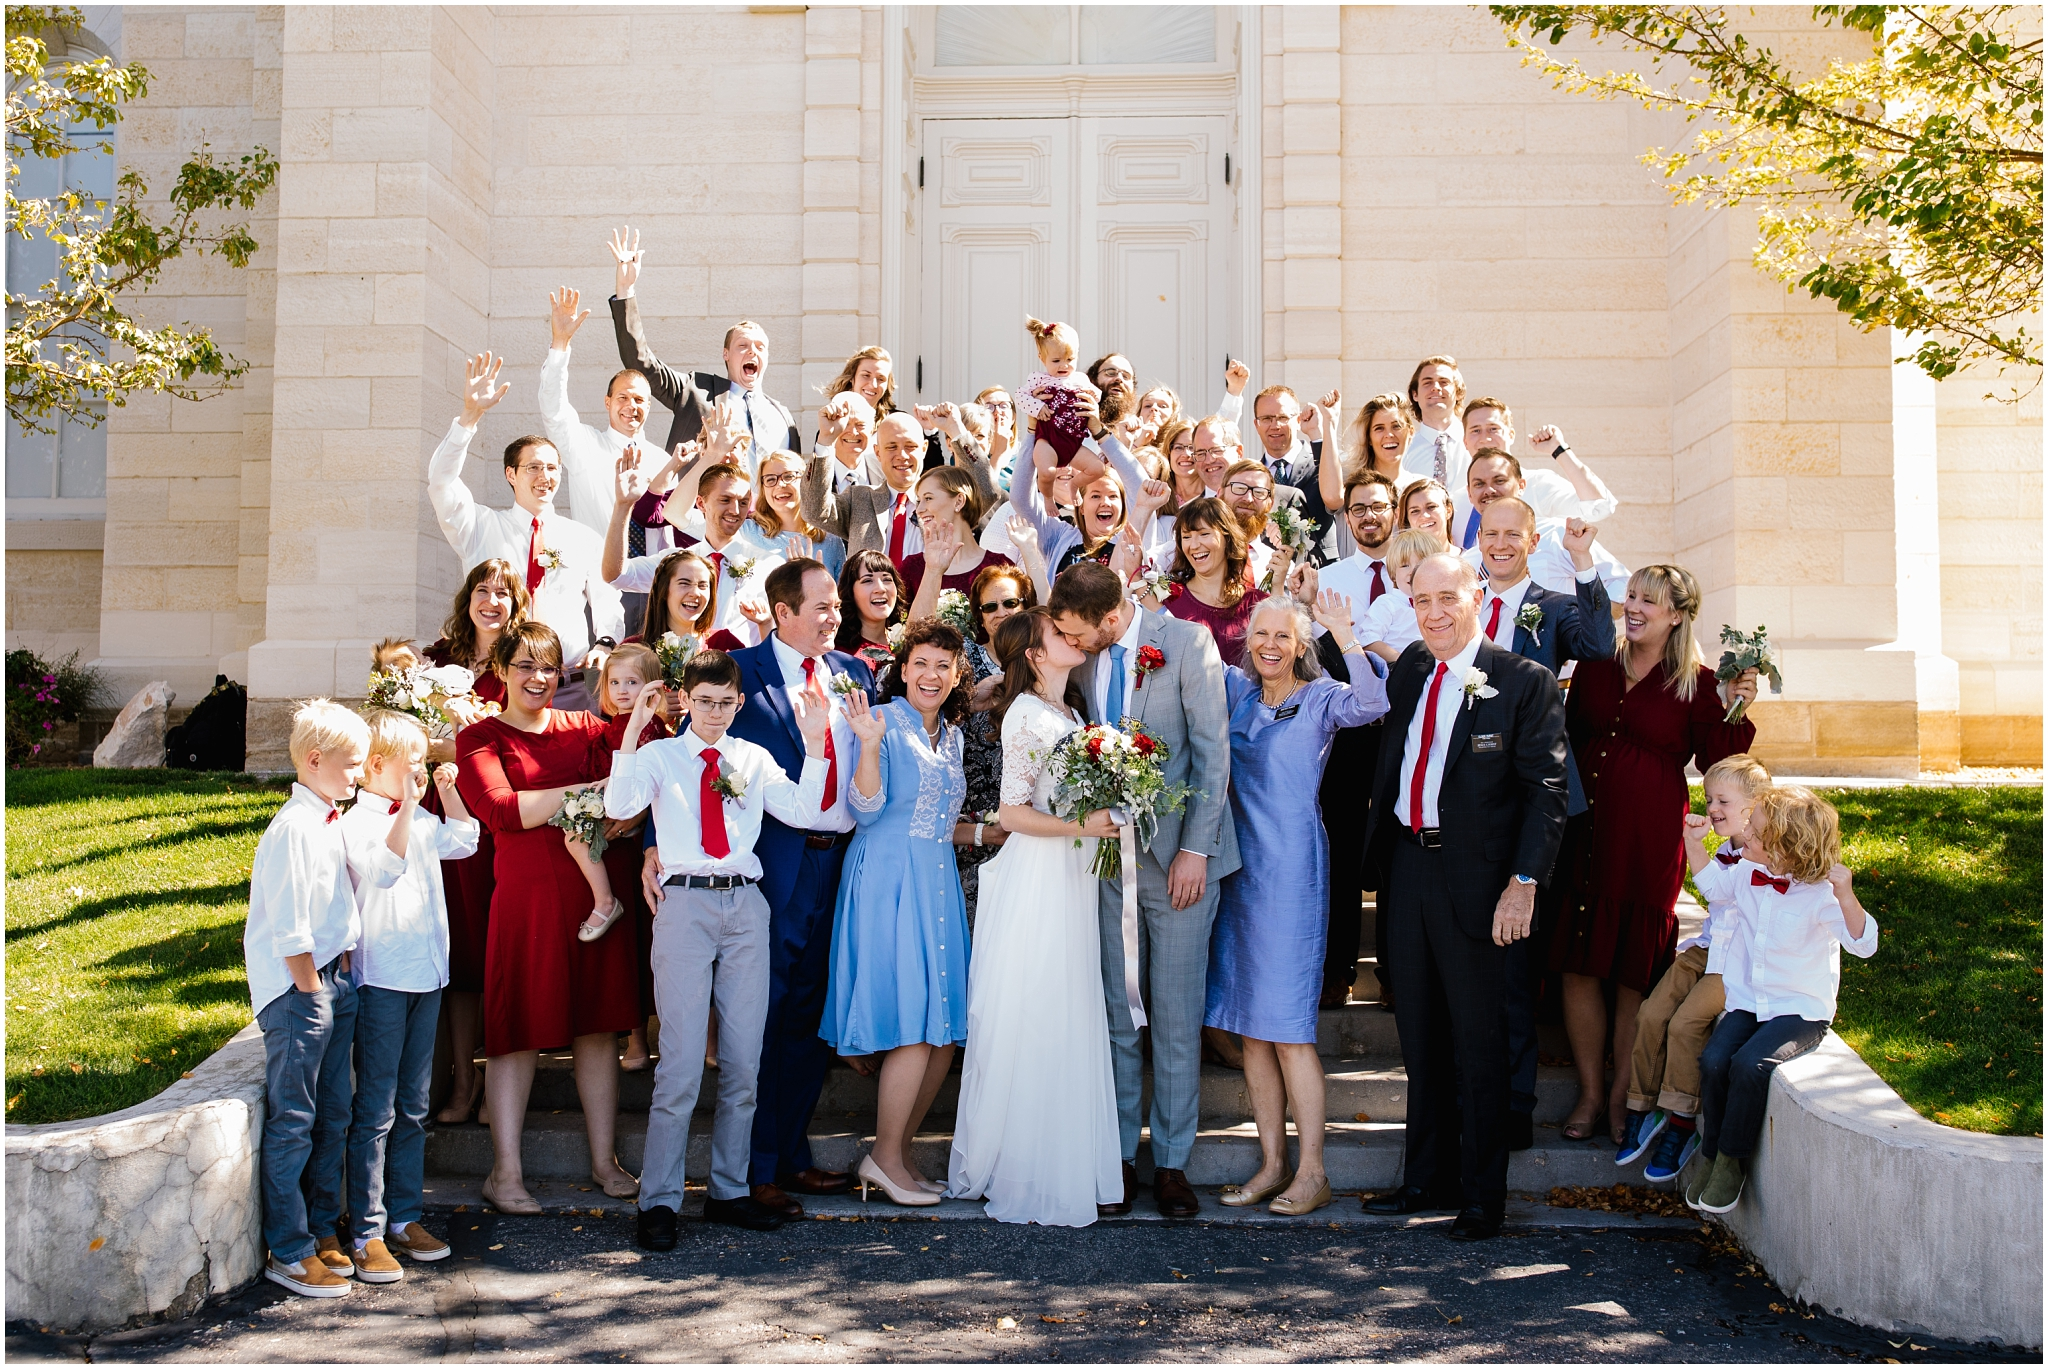 BrynneWinston-13_Lizzie-B-Imagery-Utah-Wedding-Photographer-Utah-County-Manti-Temple.jpg